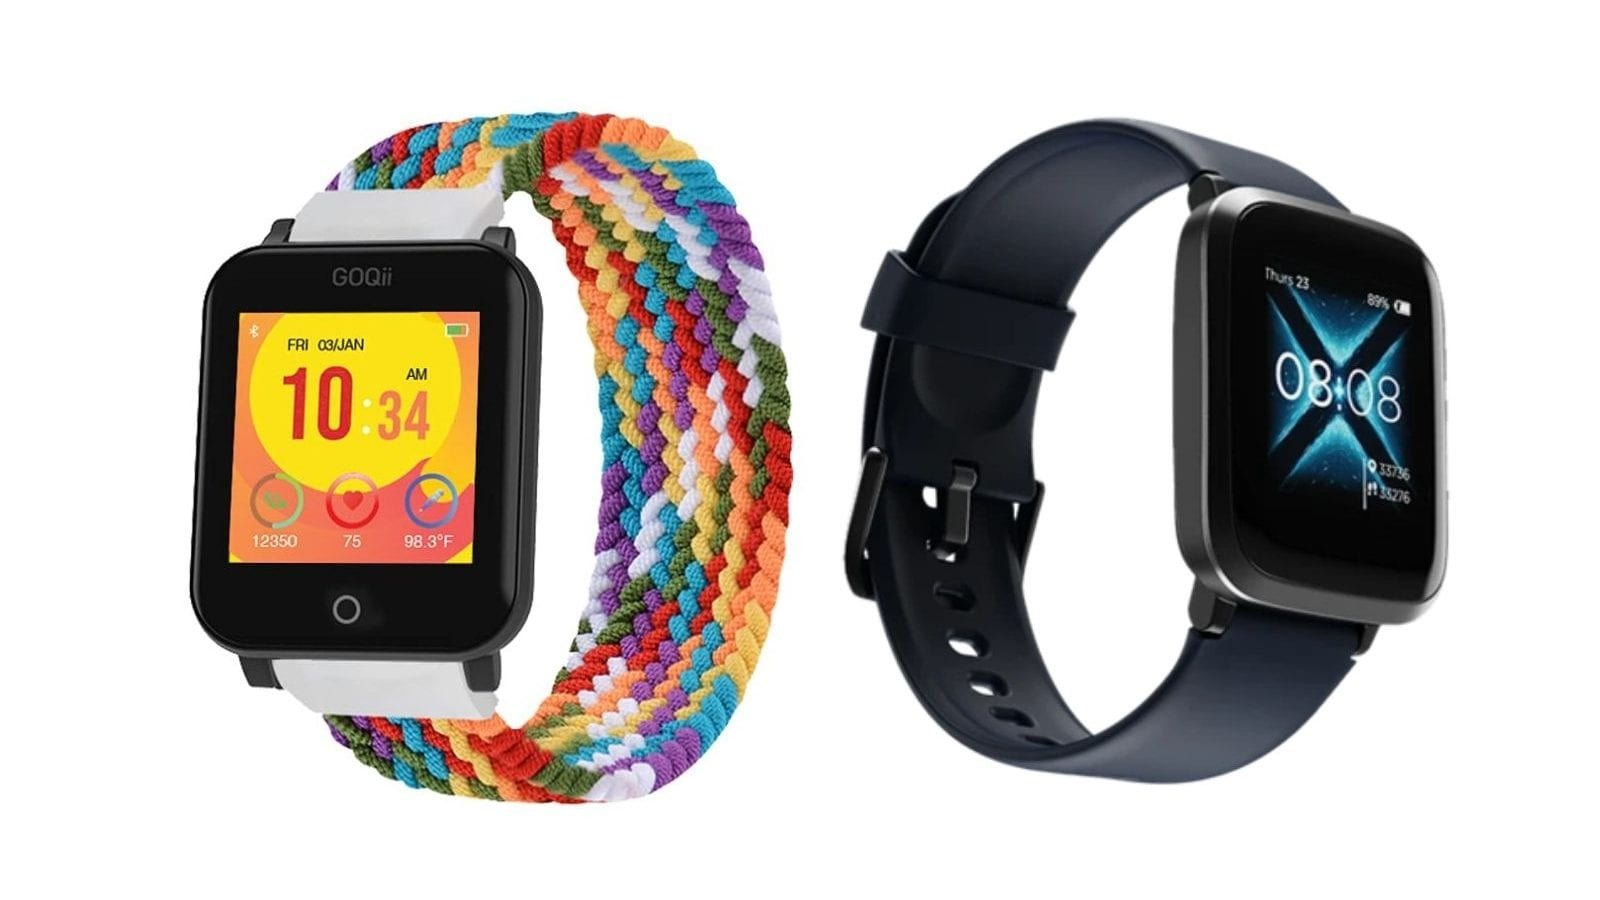 WatchOut Next Gen, Fitbit Ace 2, Boat Storm And More